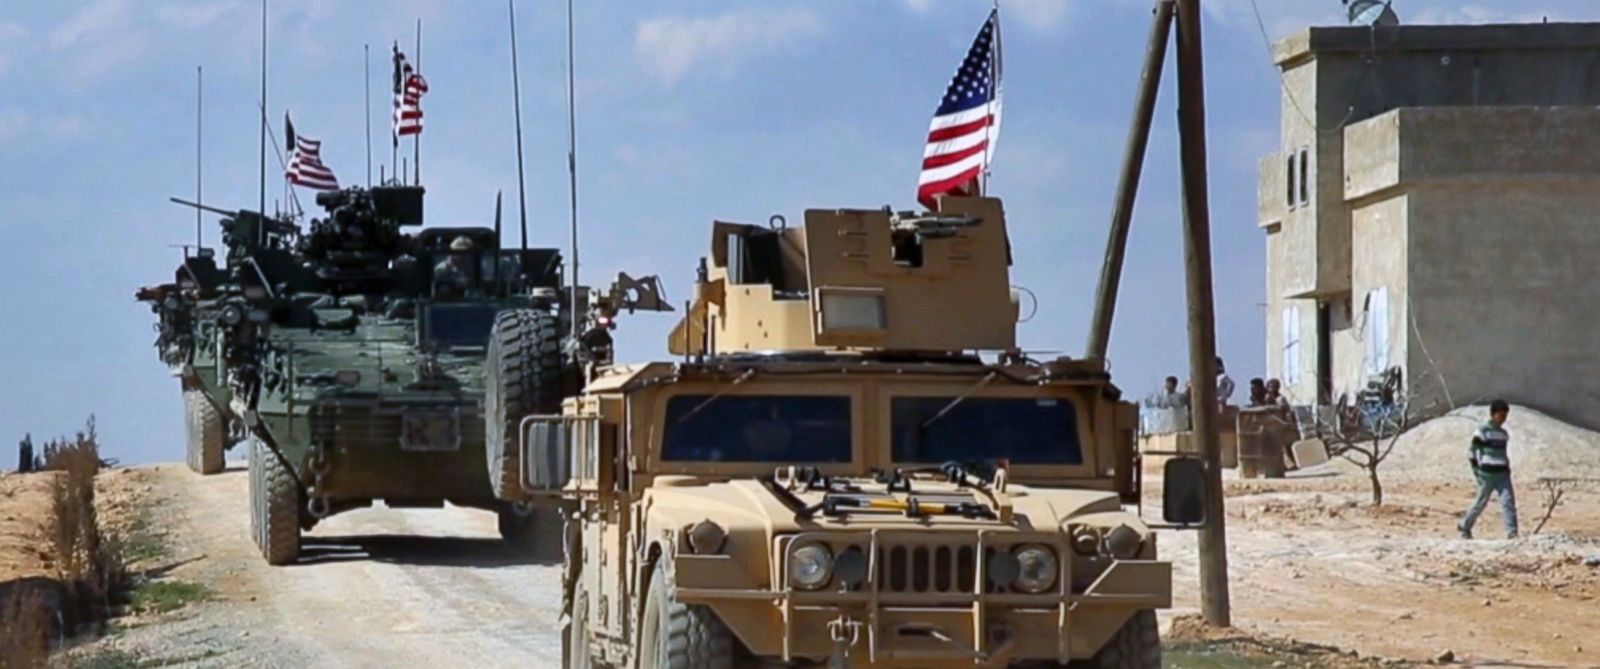 PHOTO: This frame grab from video provided by Arab 24 network, shows U.S. forces patrol on the outskirts of the Syrian town, Manbij, March 7, 2017.